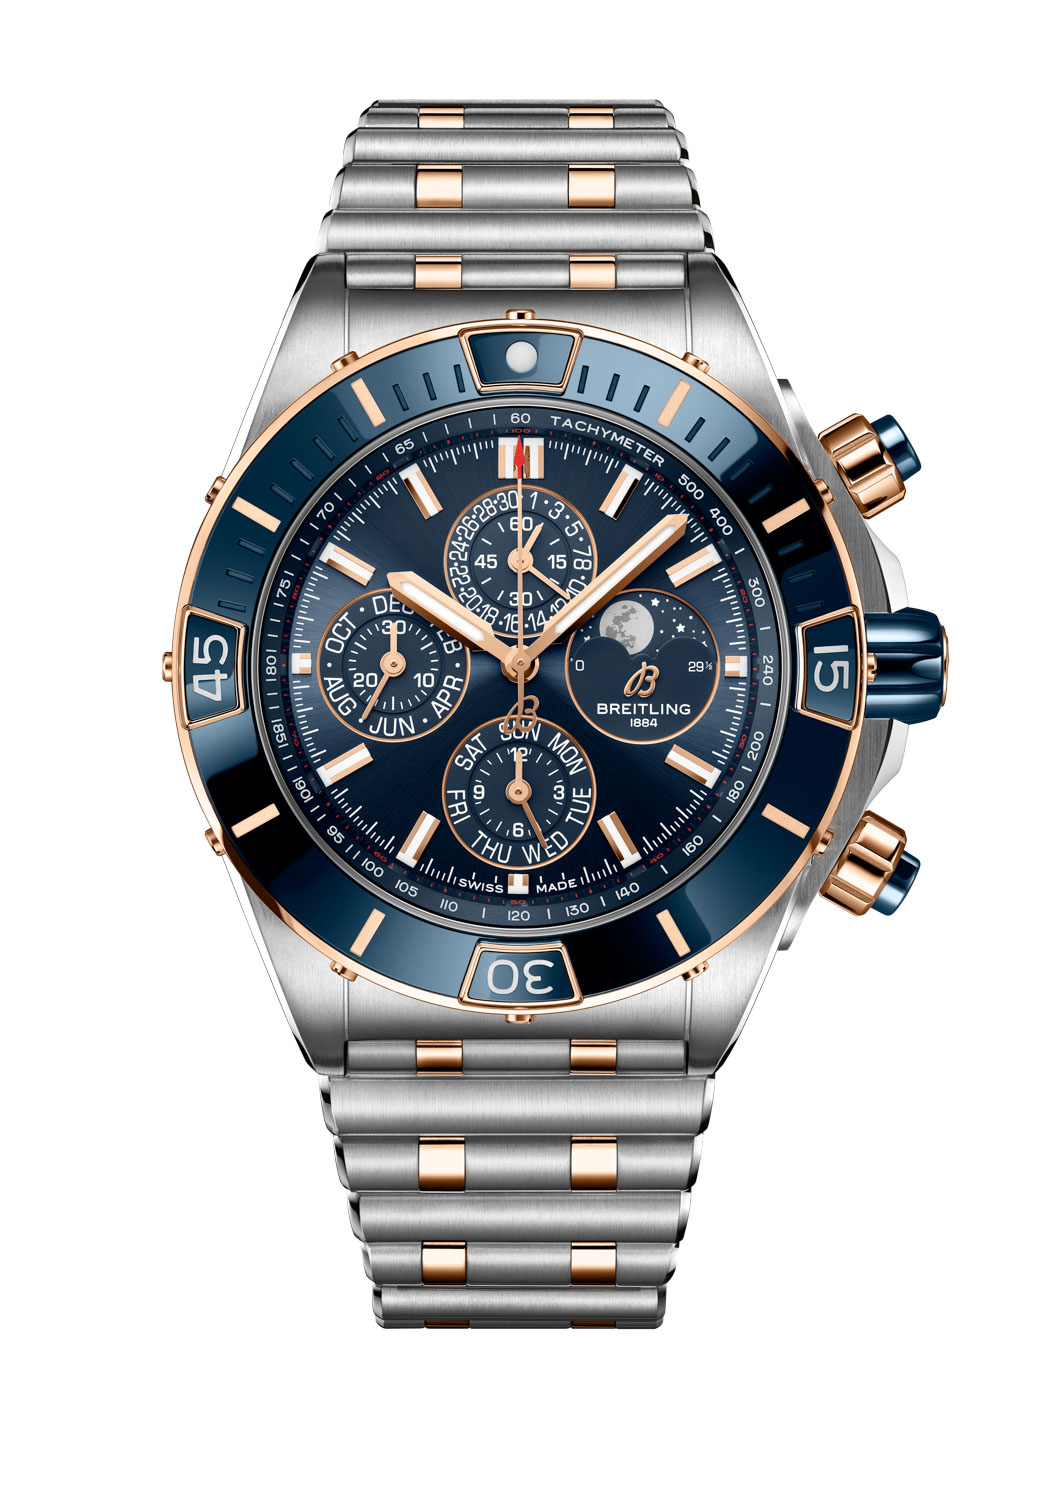 Super Chronomat 44 Four-Year Calendar with a blue dial fitted on a two-tone Rouleaux bracelet (stainless steel and 18 k red gold) with butterfly clasp